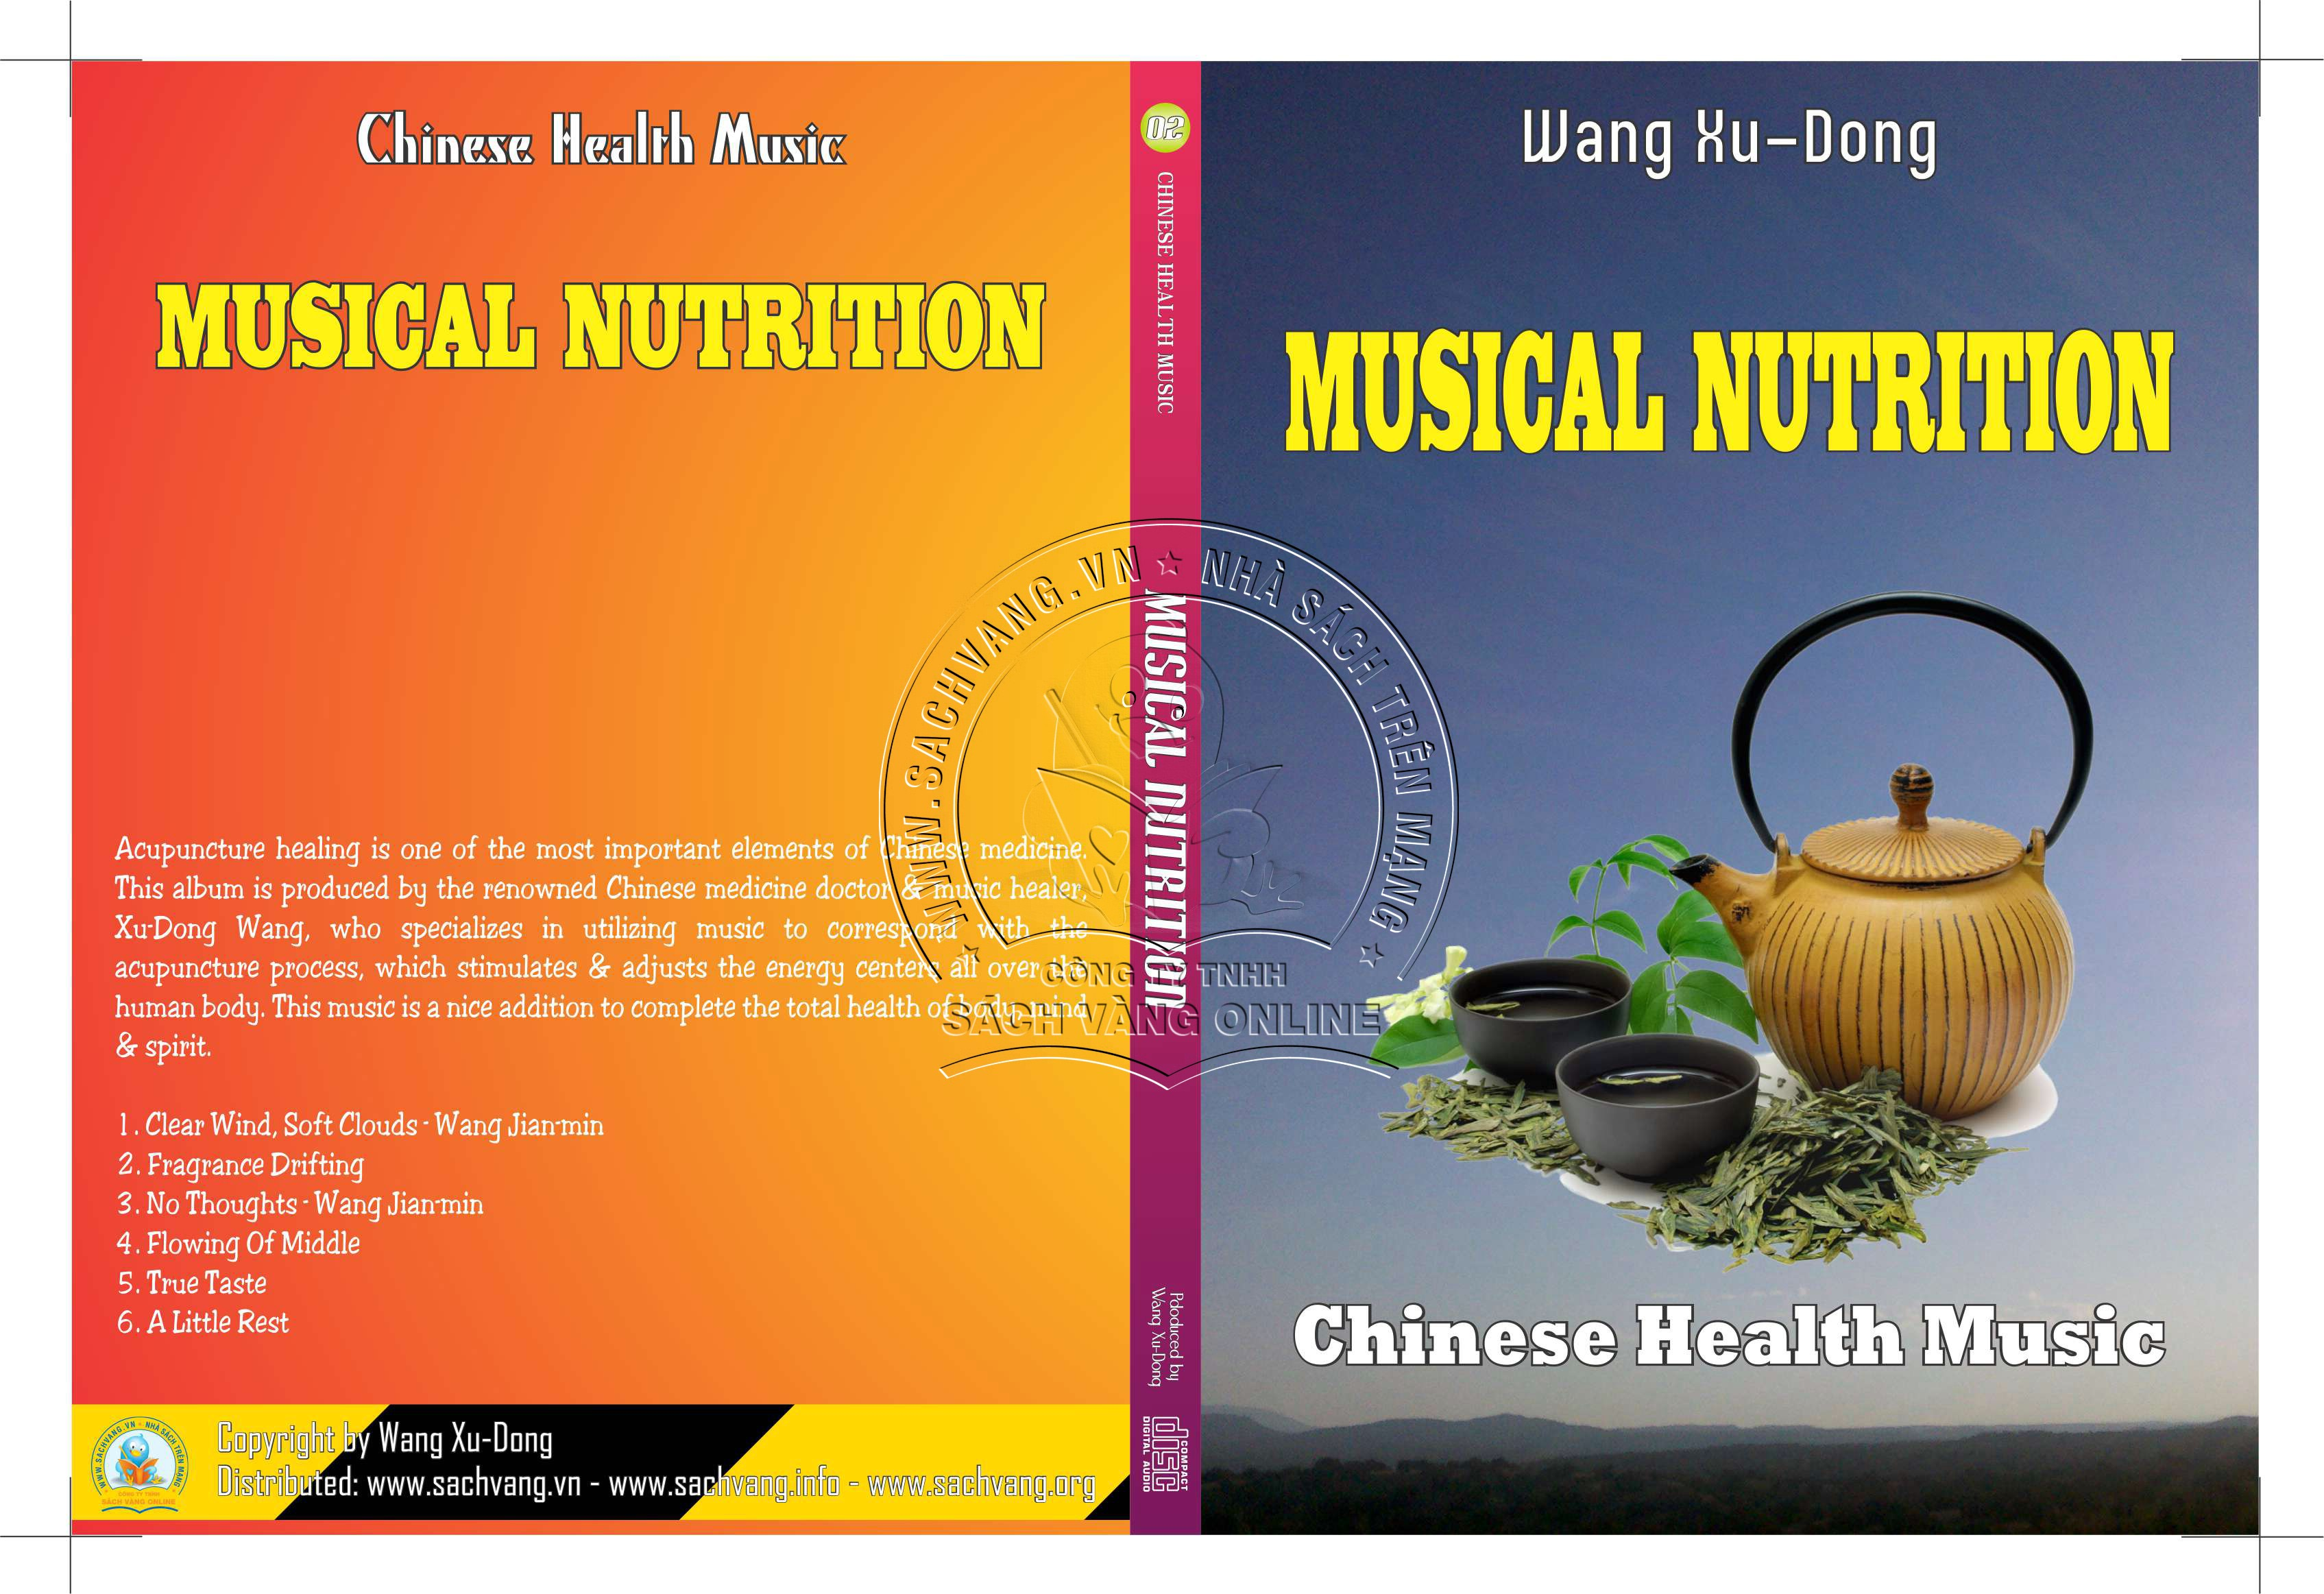 Chinese Health Music - 02 - Musical Nutrition